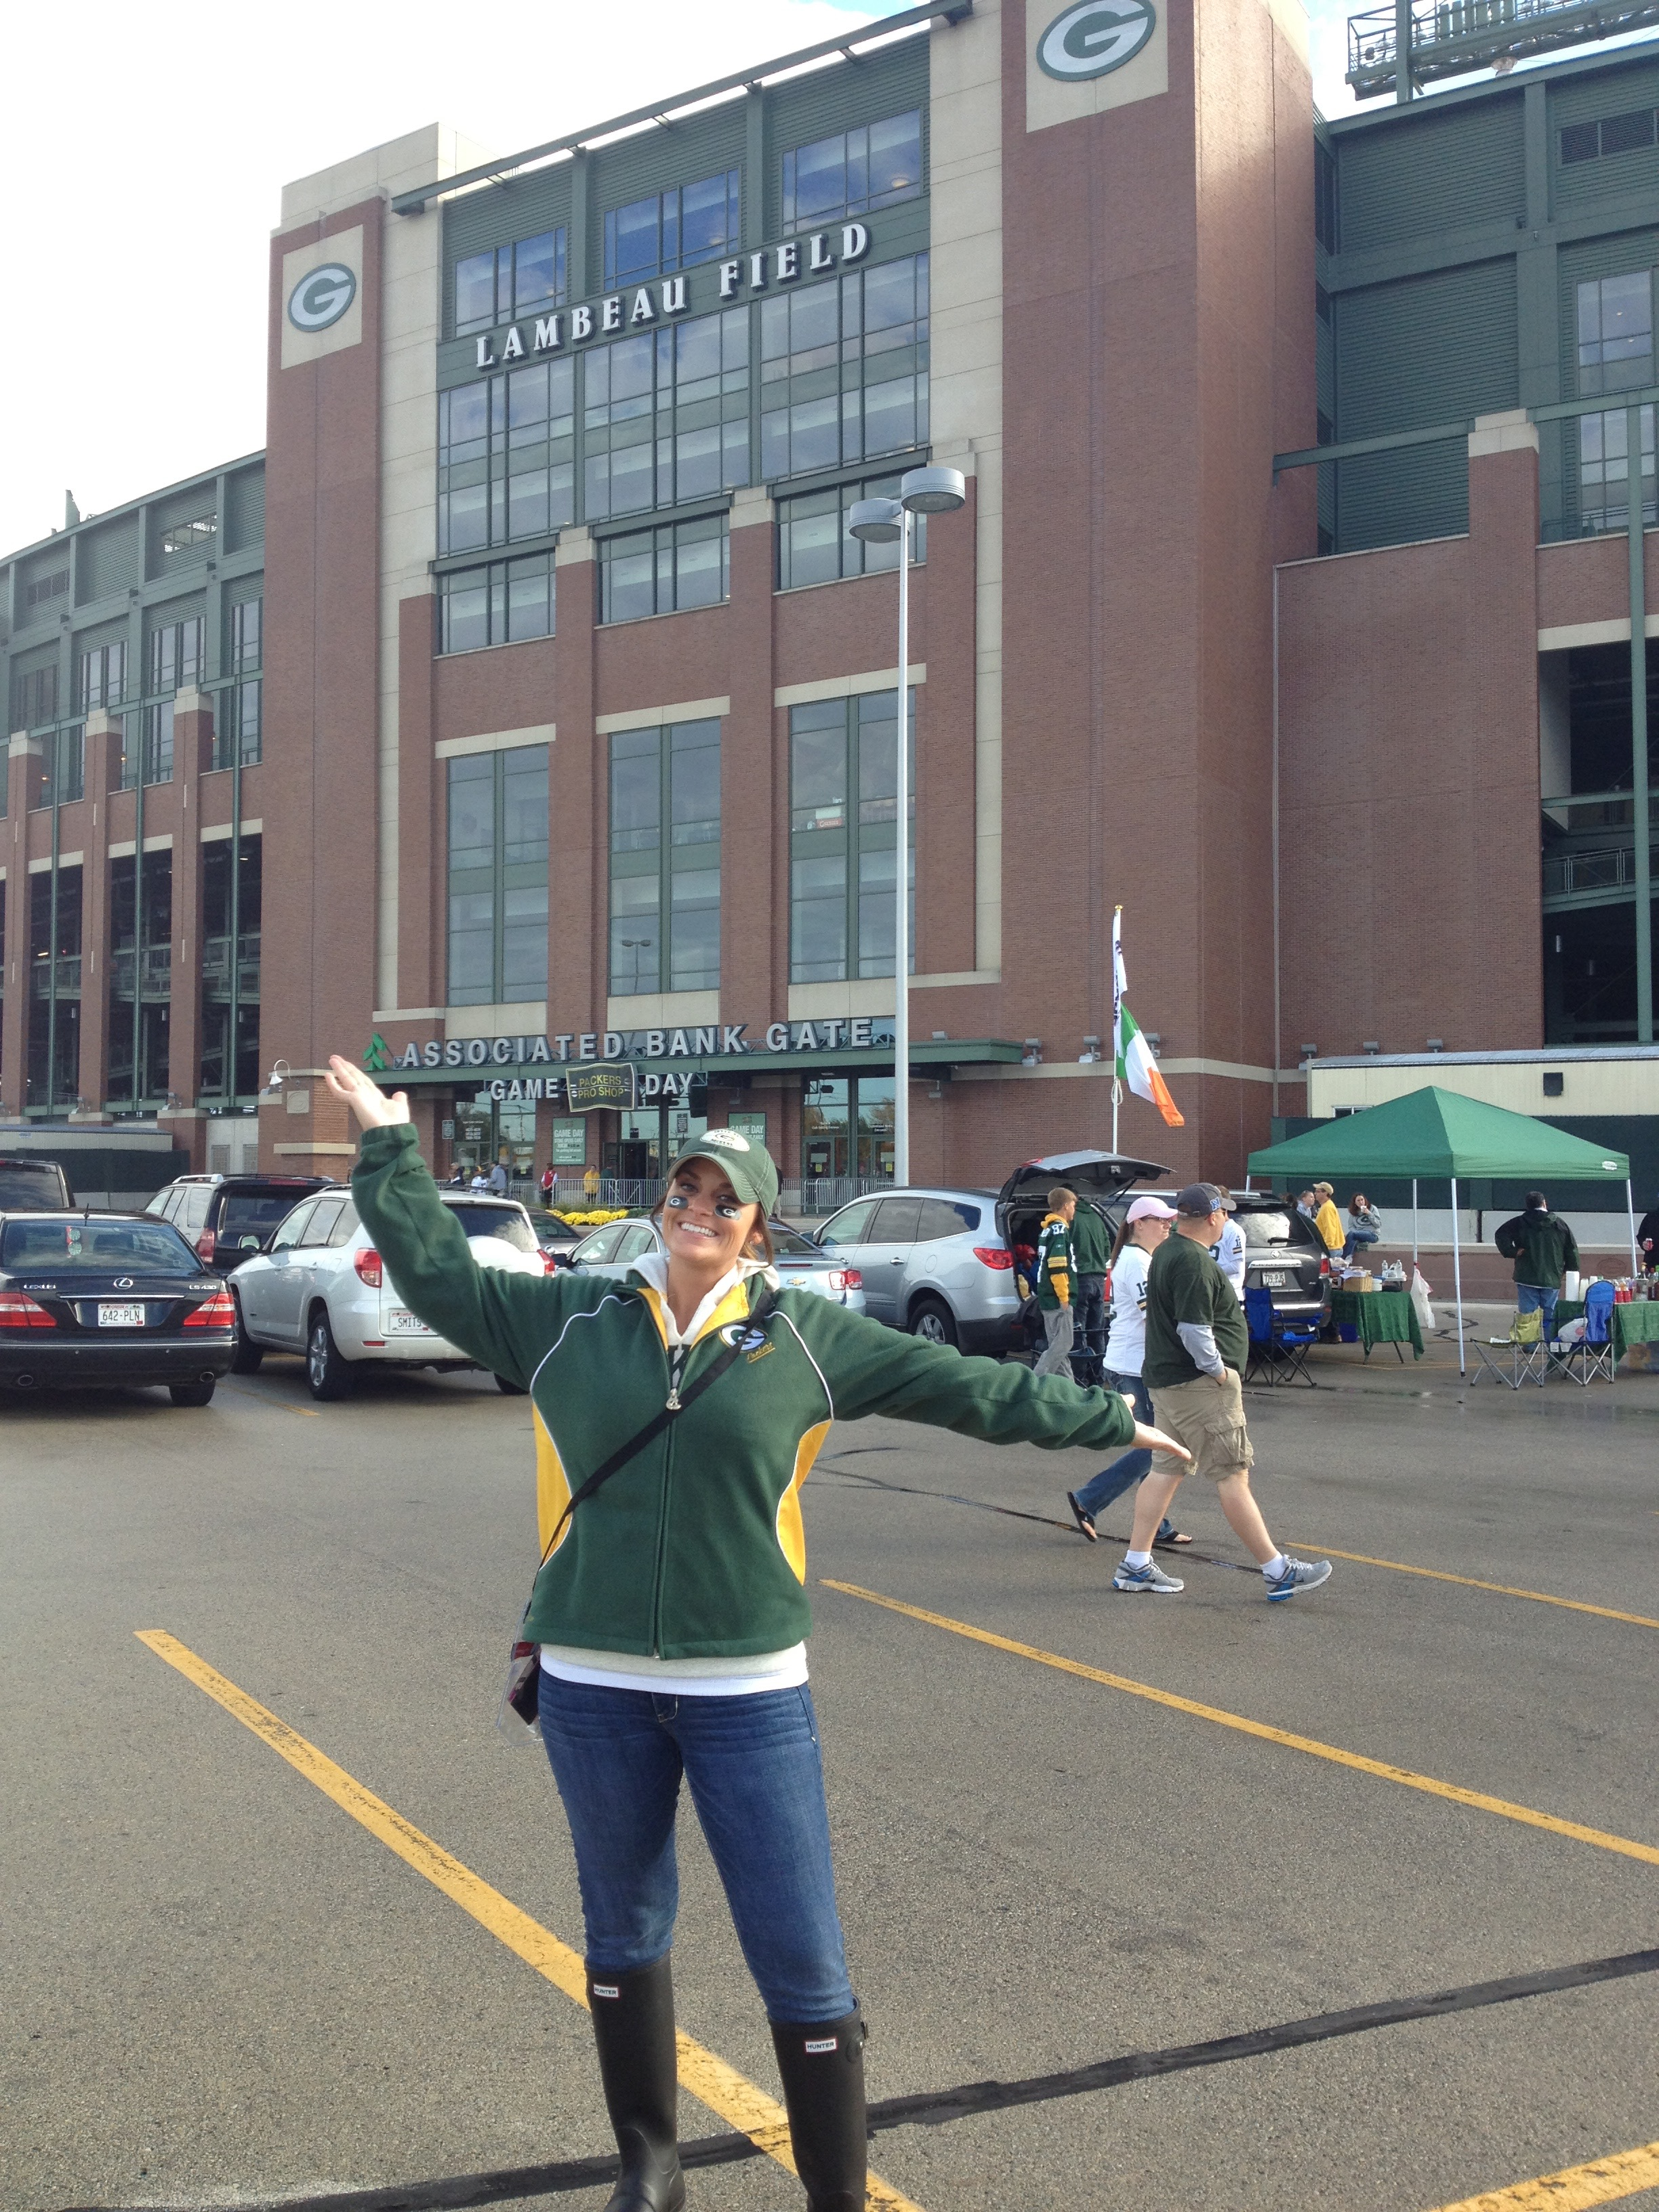 Rain or shine, I love my time up in Green Bay for the Packer games